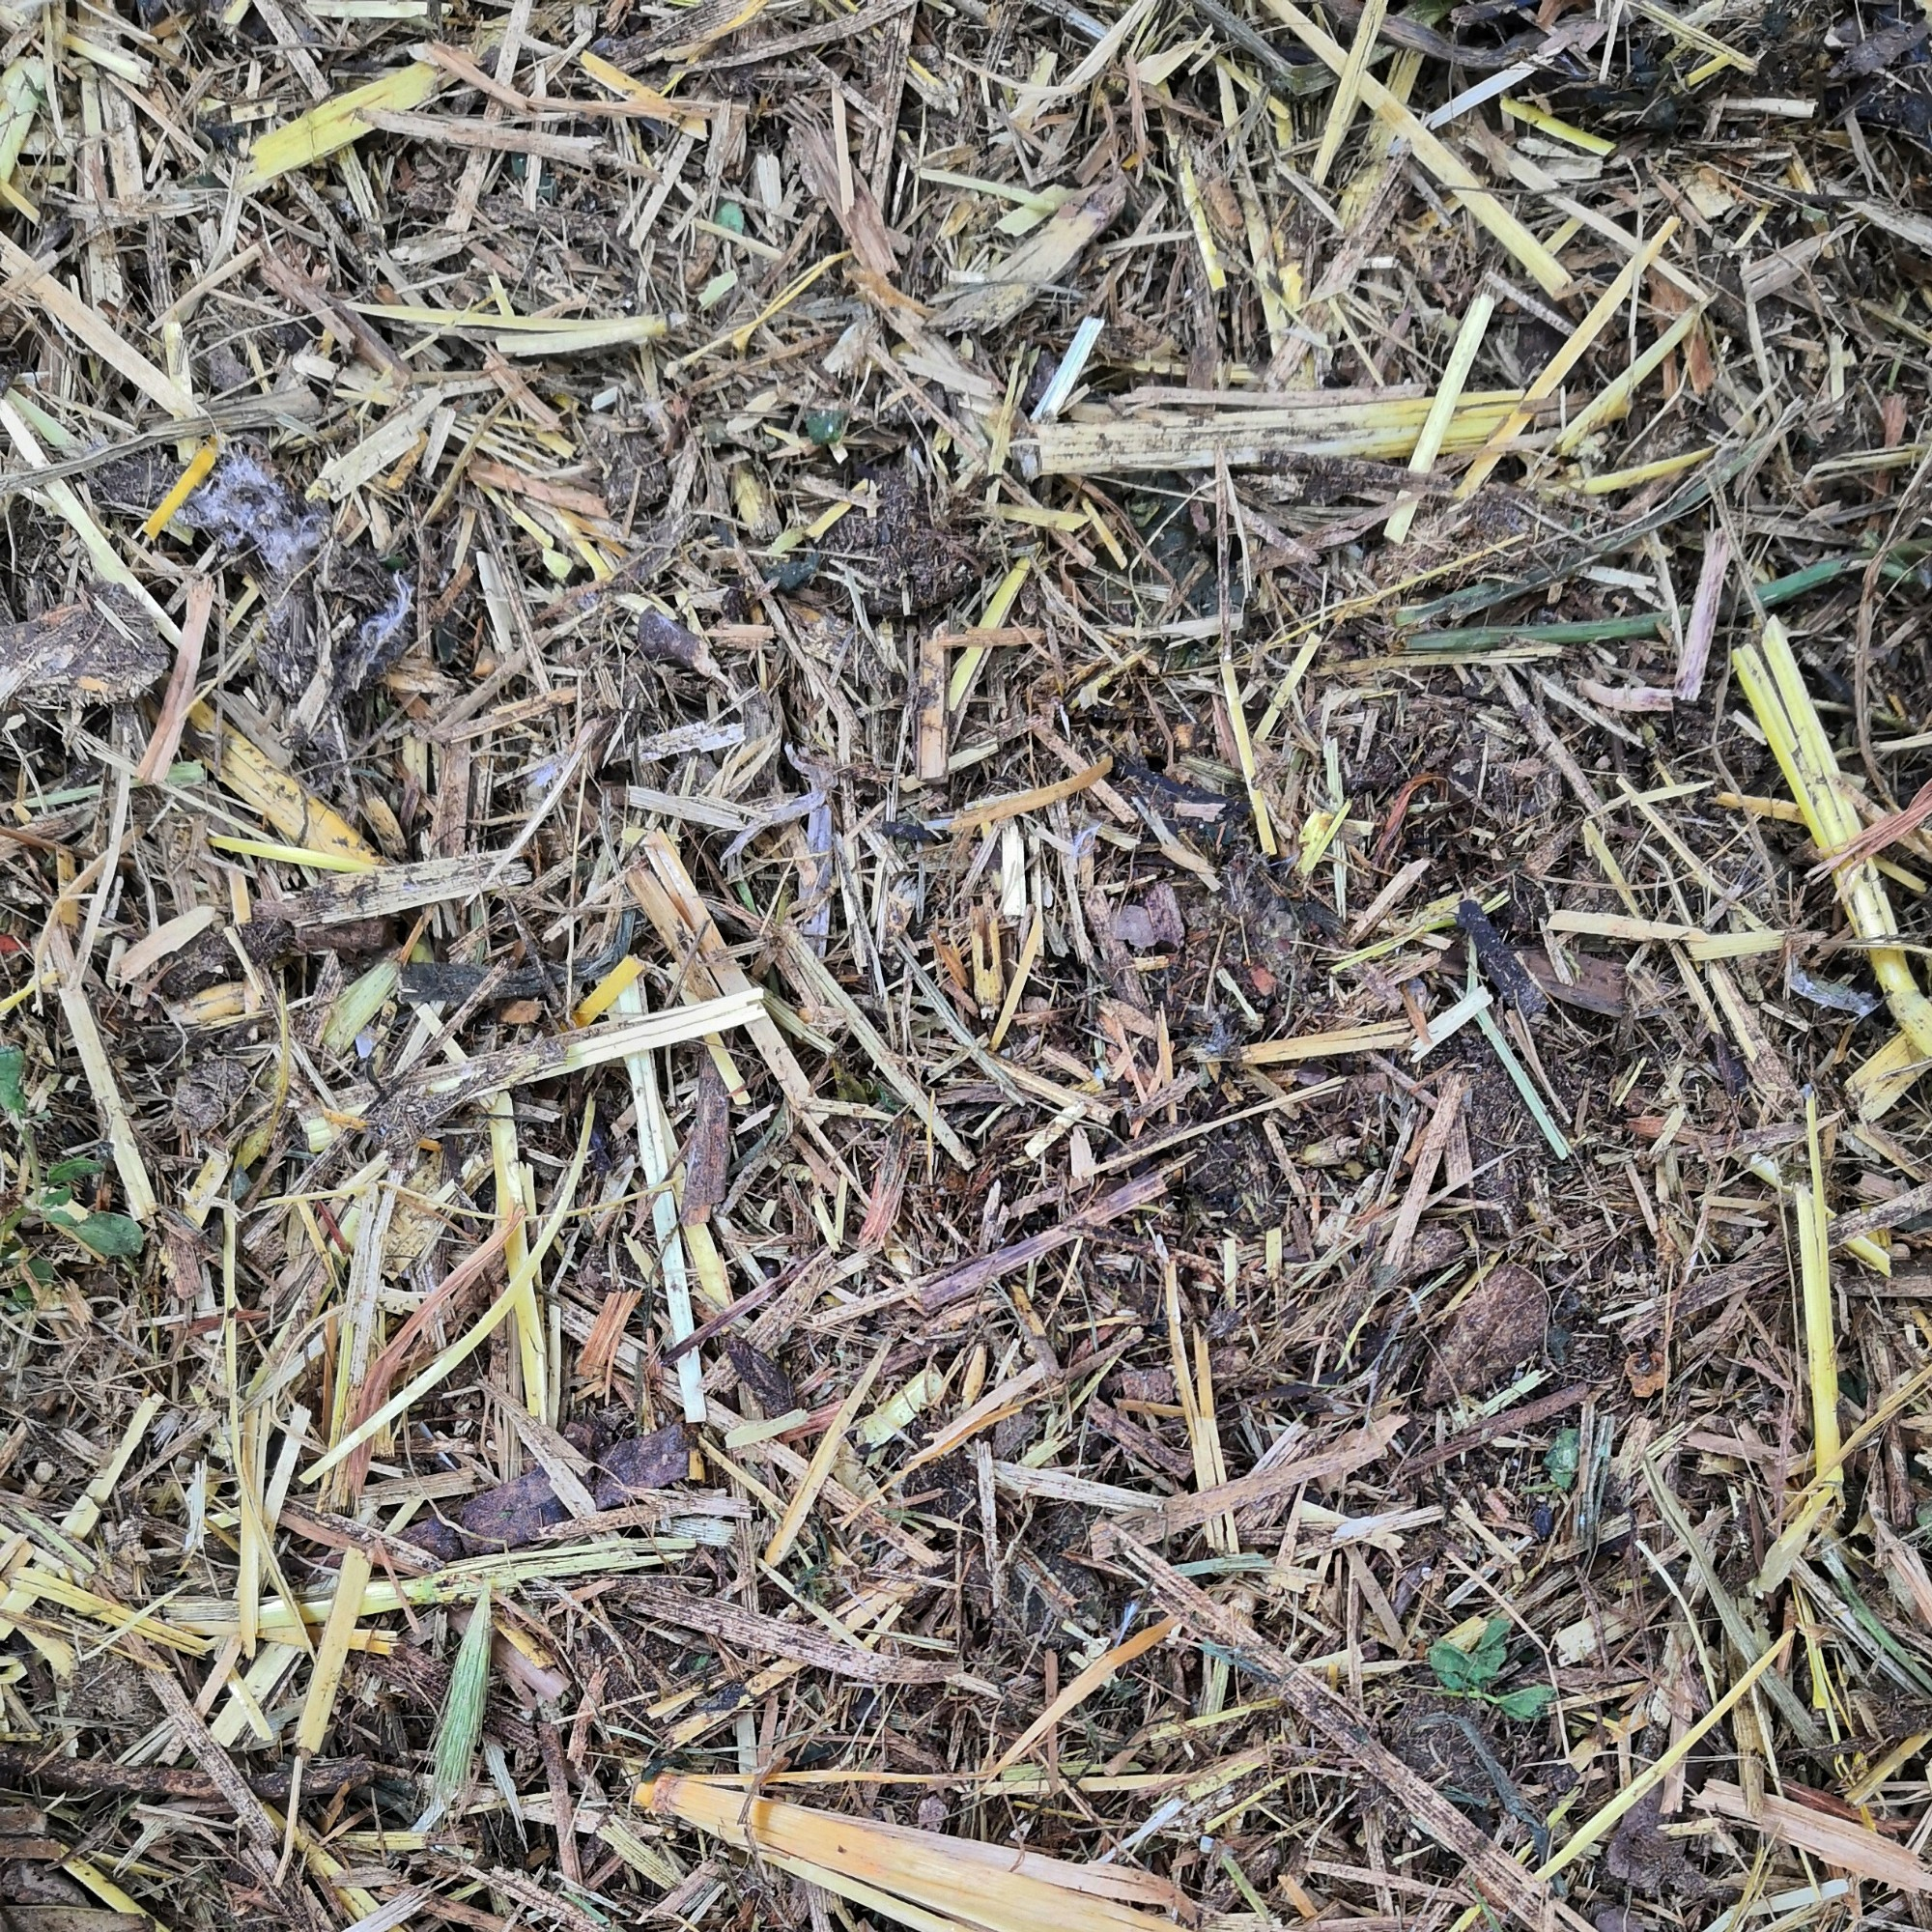 Shredded wood mulch